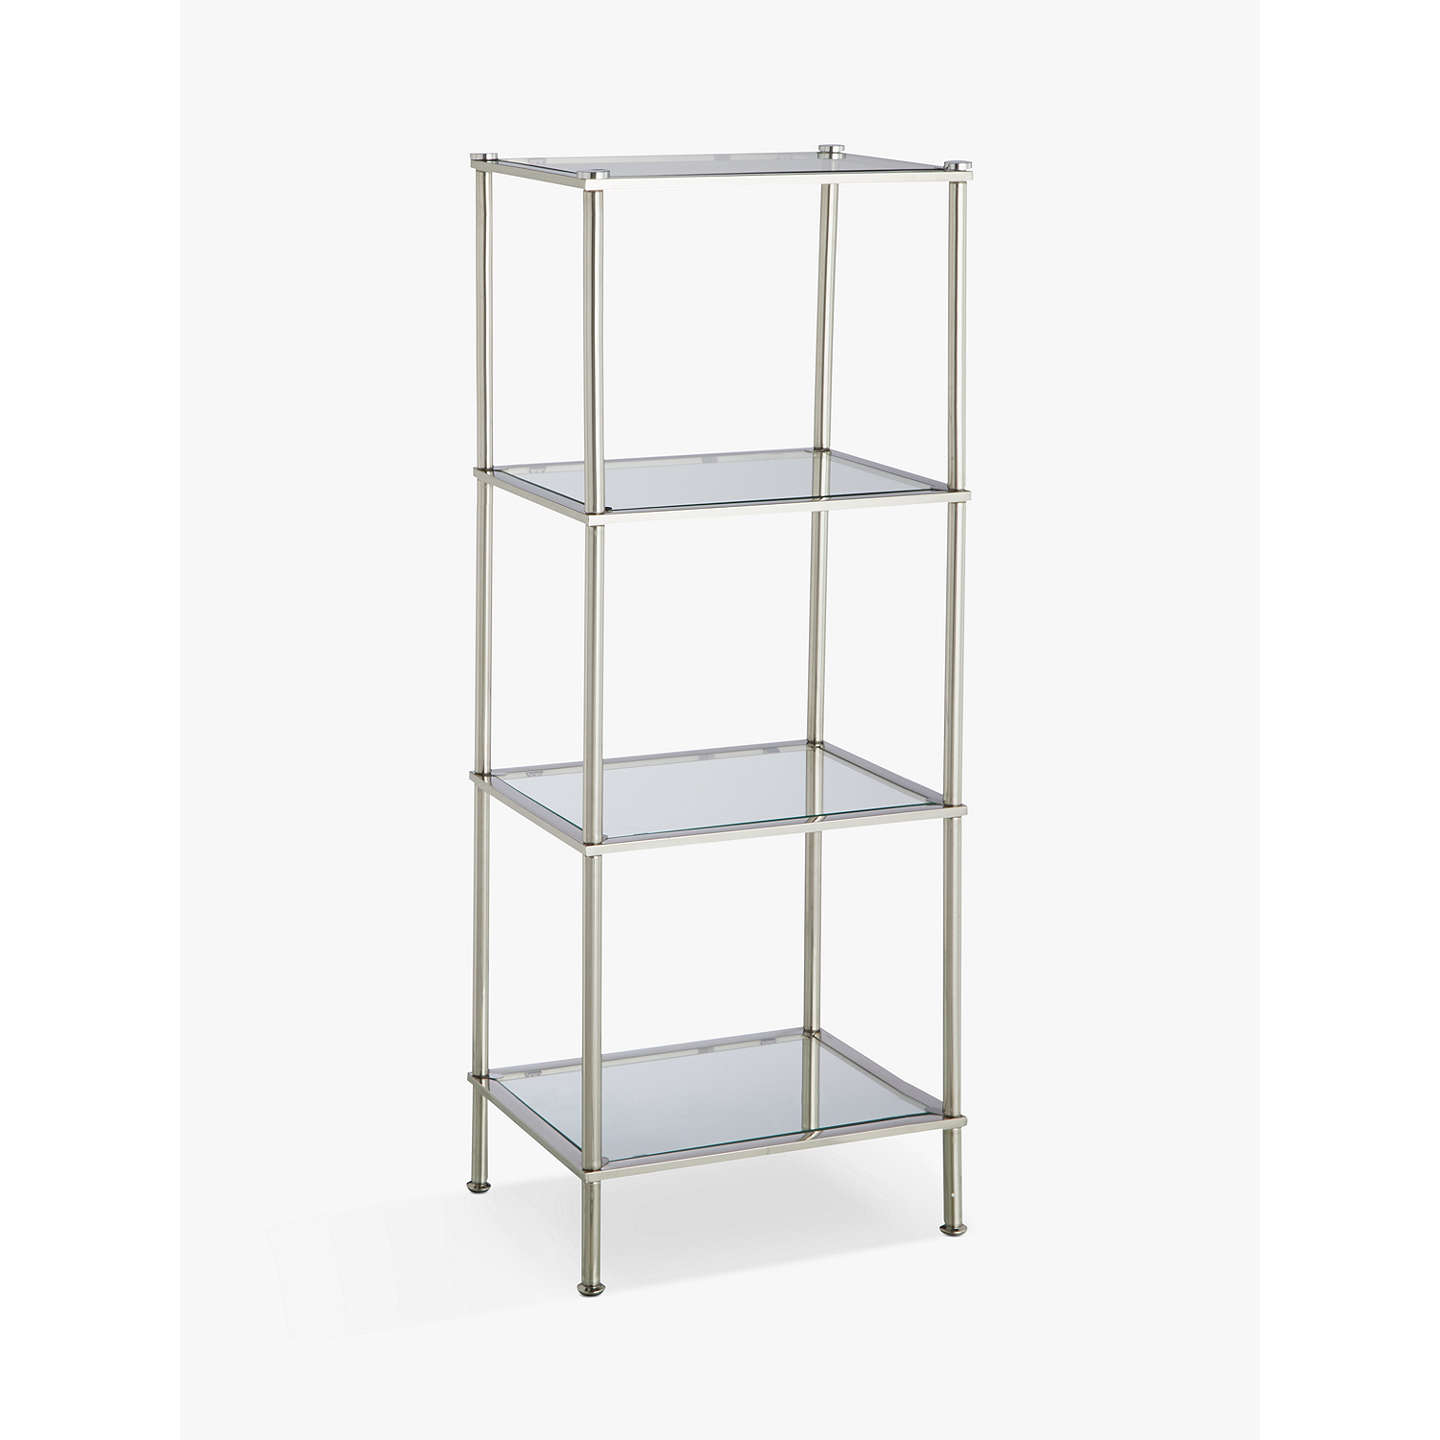 john lewis 4 tier rust resistant stainless steel and glass bathroom shelf unit at john lewis